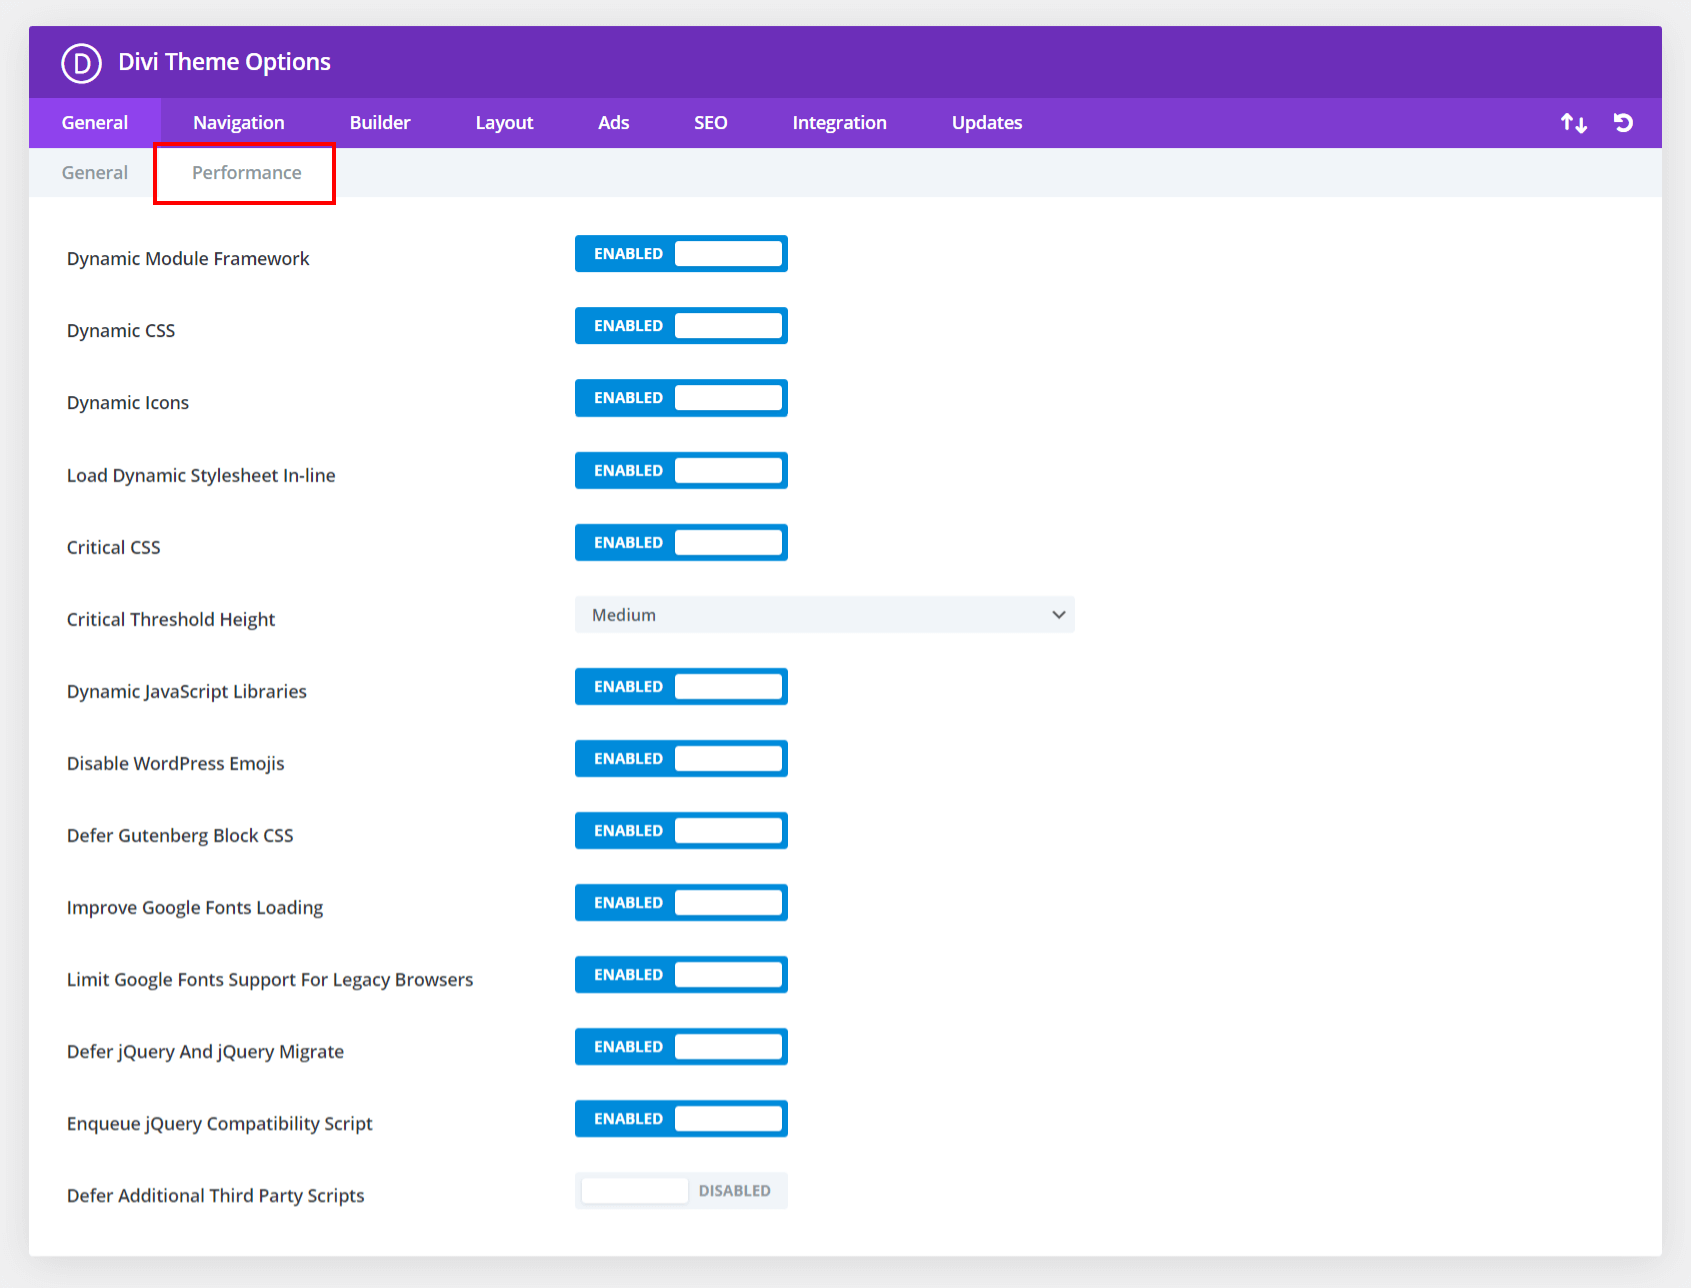 new performance tab in Divi Theme Options